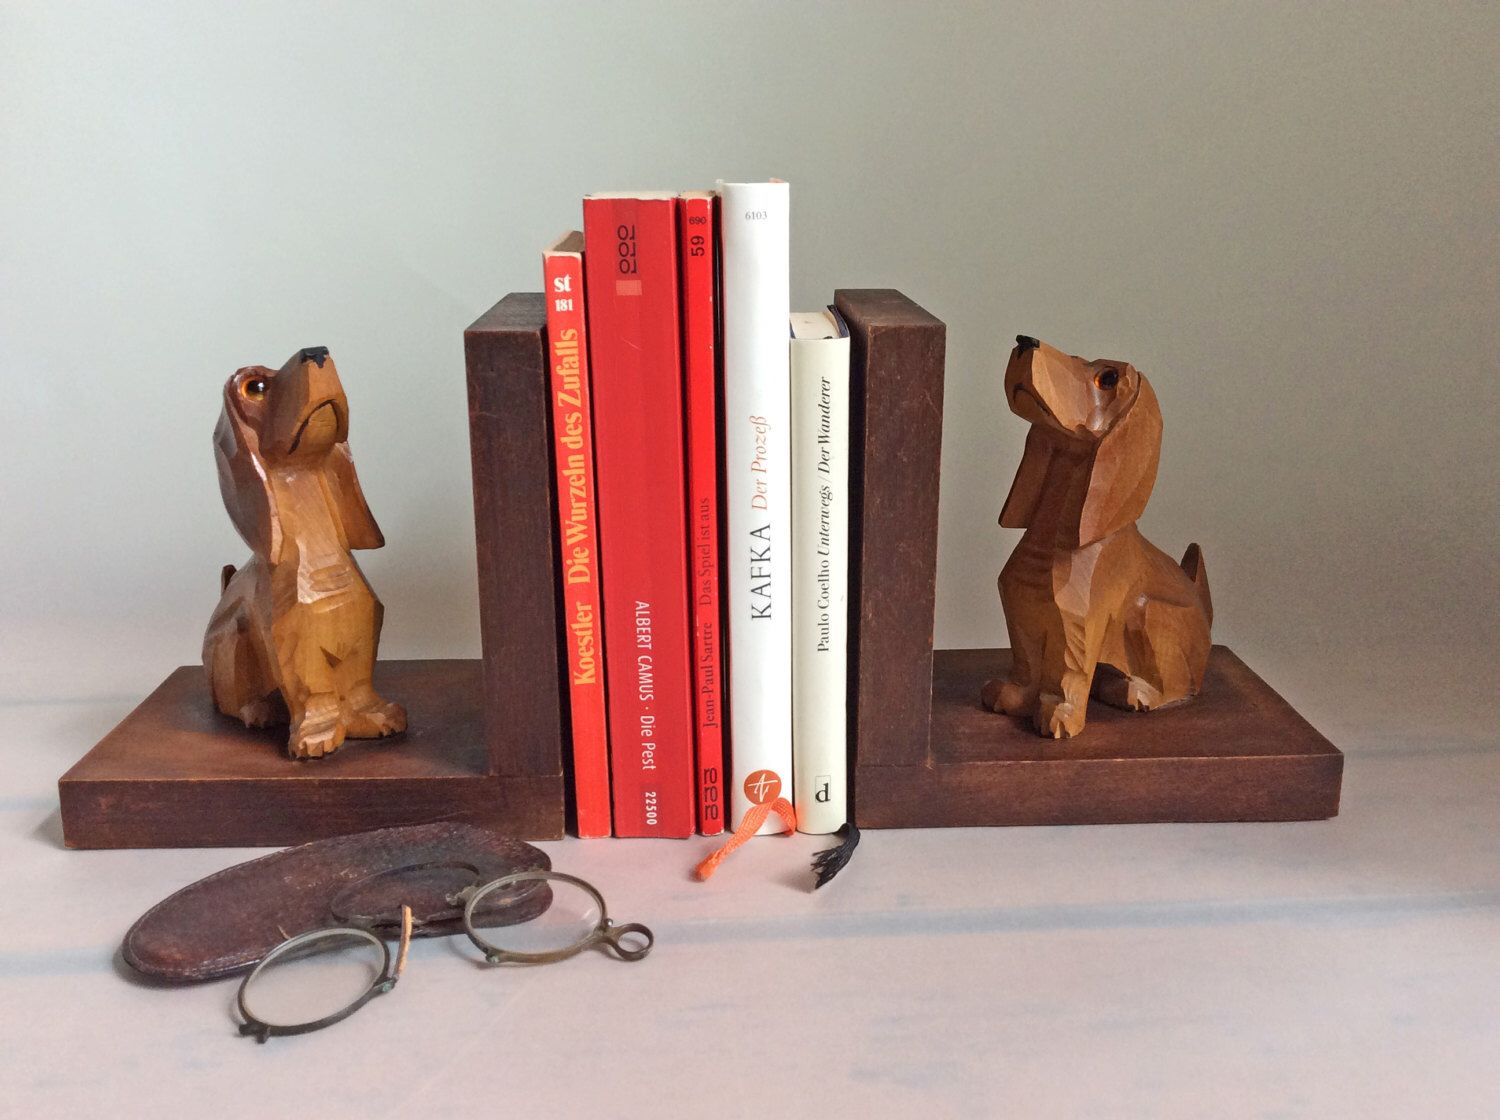 Dachshund Home Decor Vintage Dachshund Wiener Dog Sausage Dog Bookends Wooden Dog Book